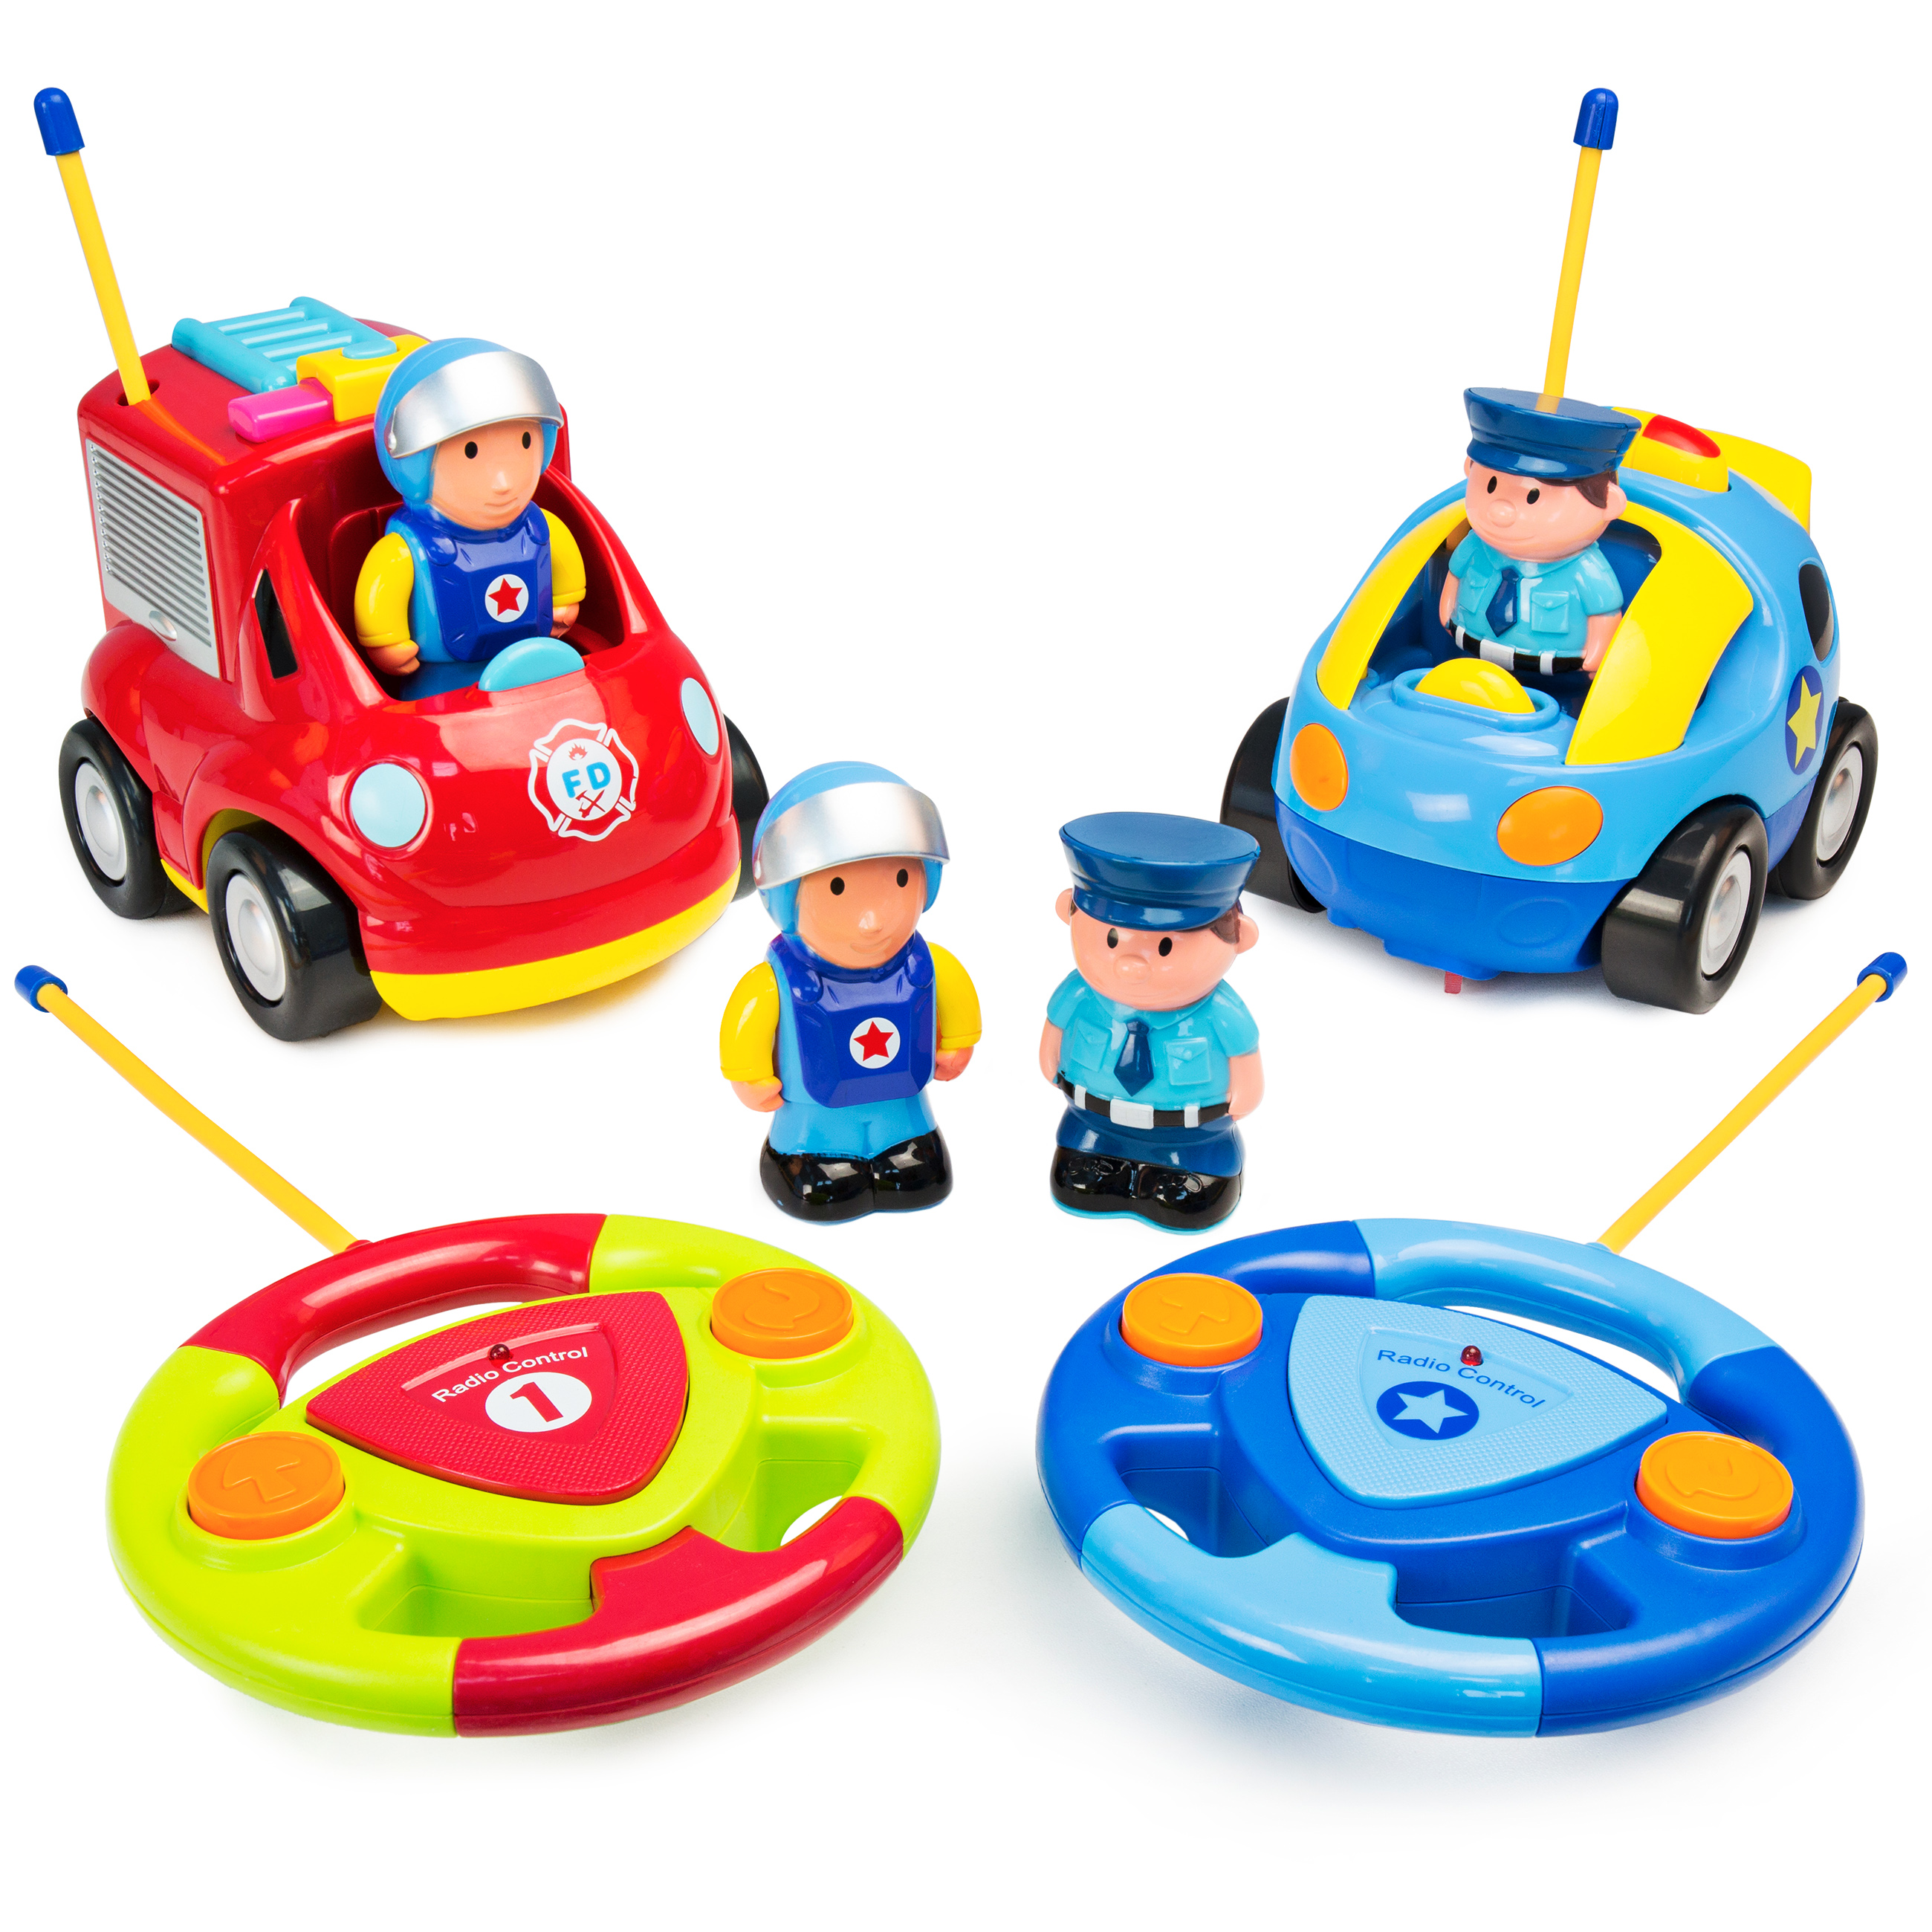 Best Choice Products Set of 2 Kids Cartoon Remote Control RC Firetruck and Police Car Toy w/ 2 Remotes, 2 Removable Action Figures - Multicolor